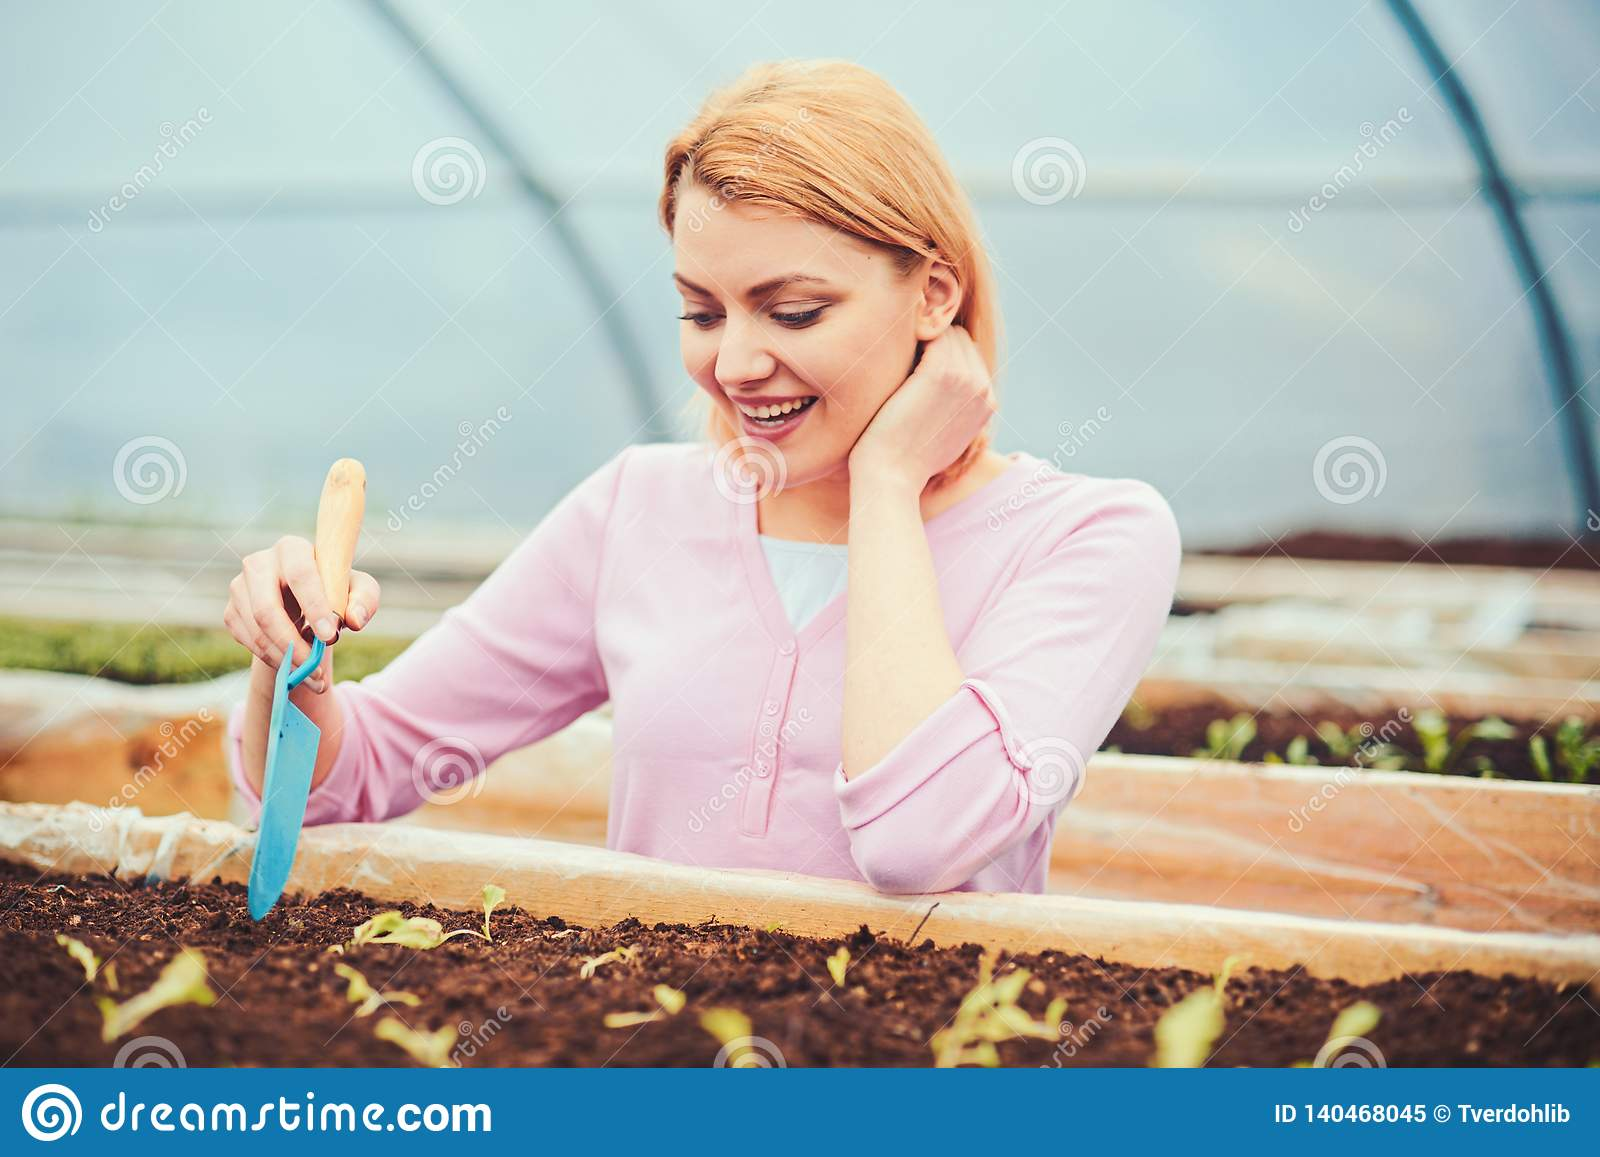 Lovely Blond Lady Digging Small Hole In Plant Box. Female